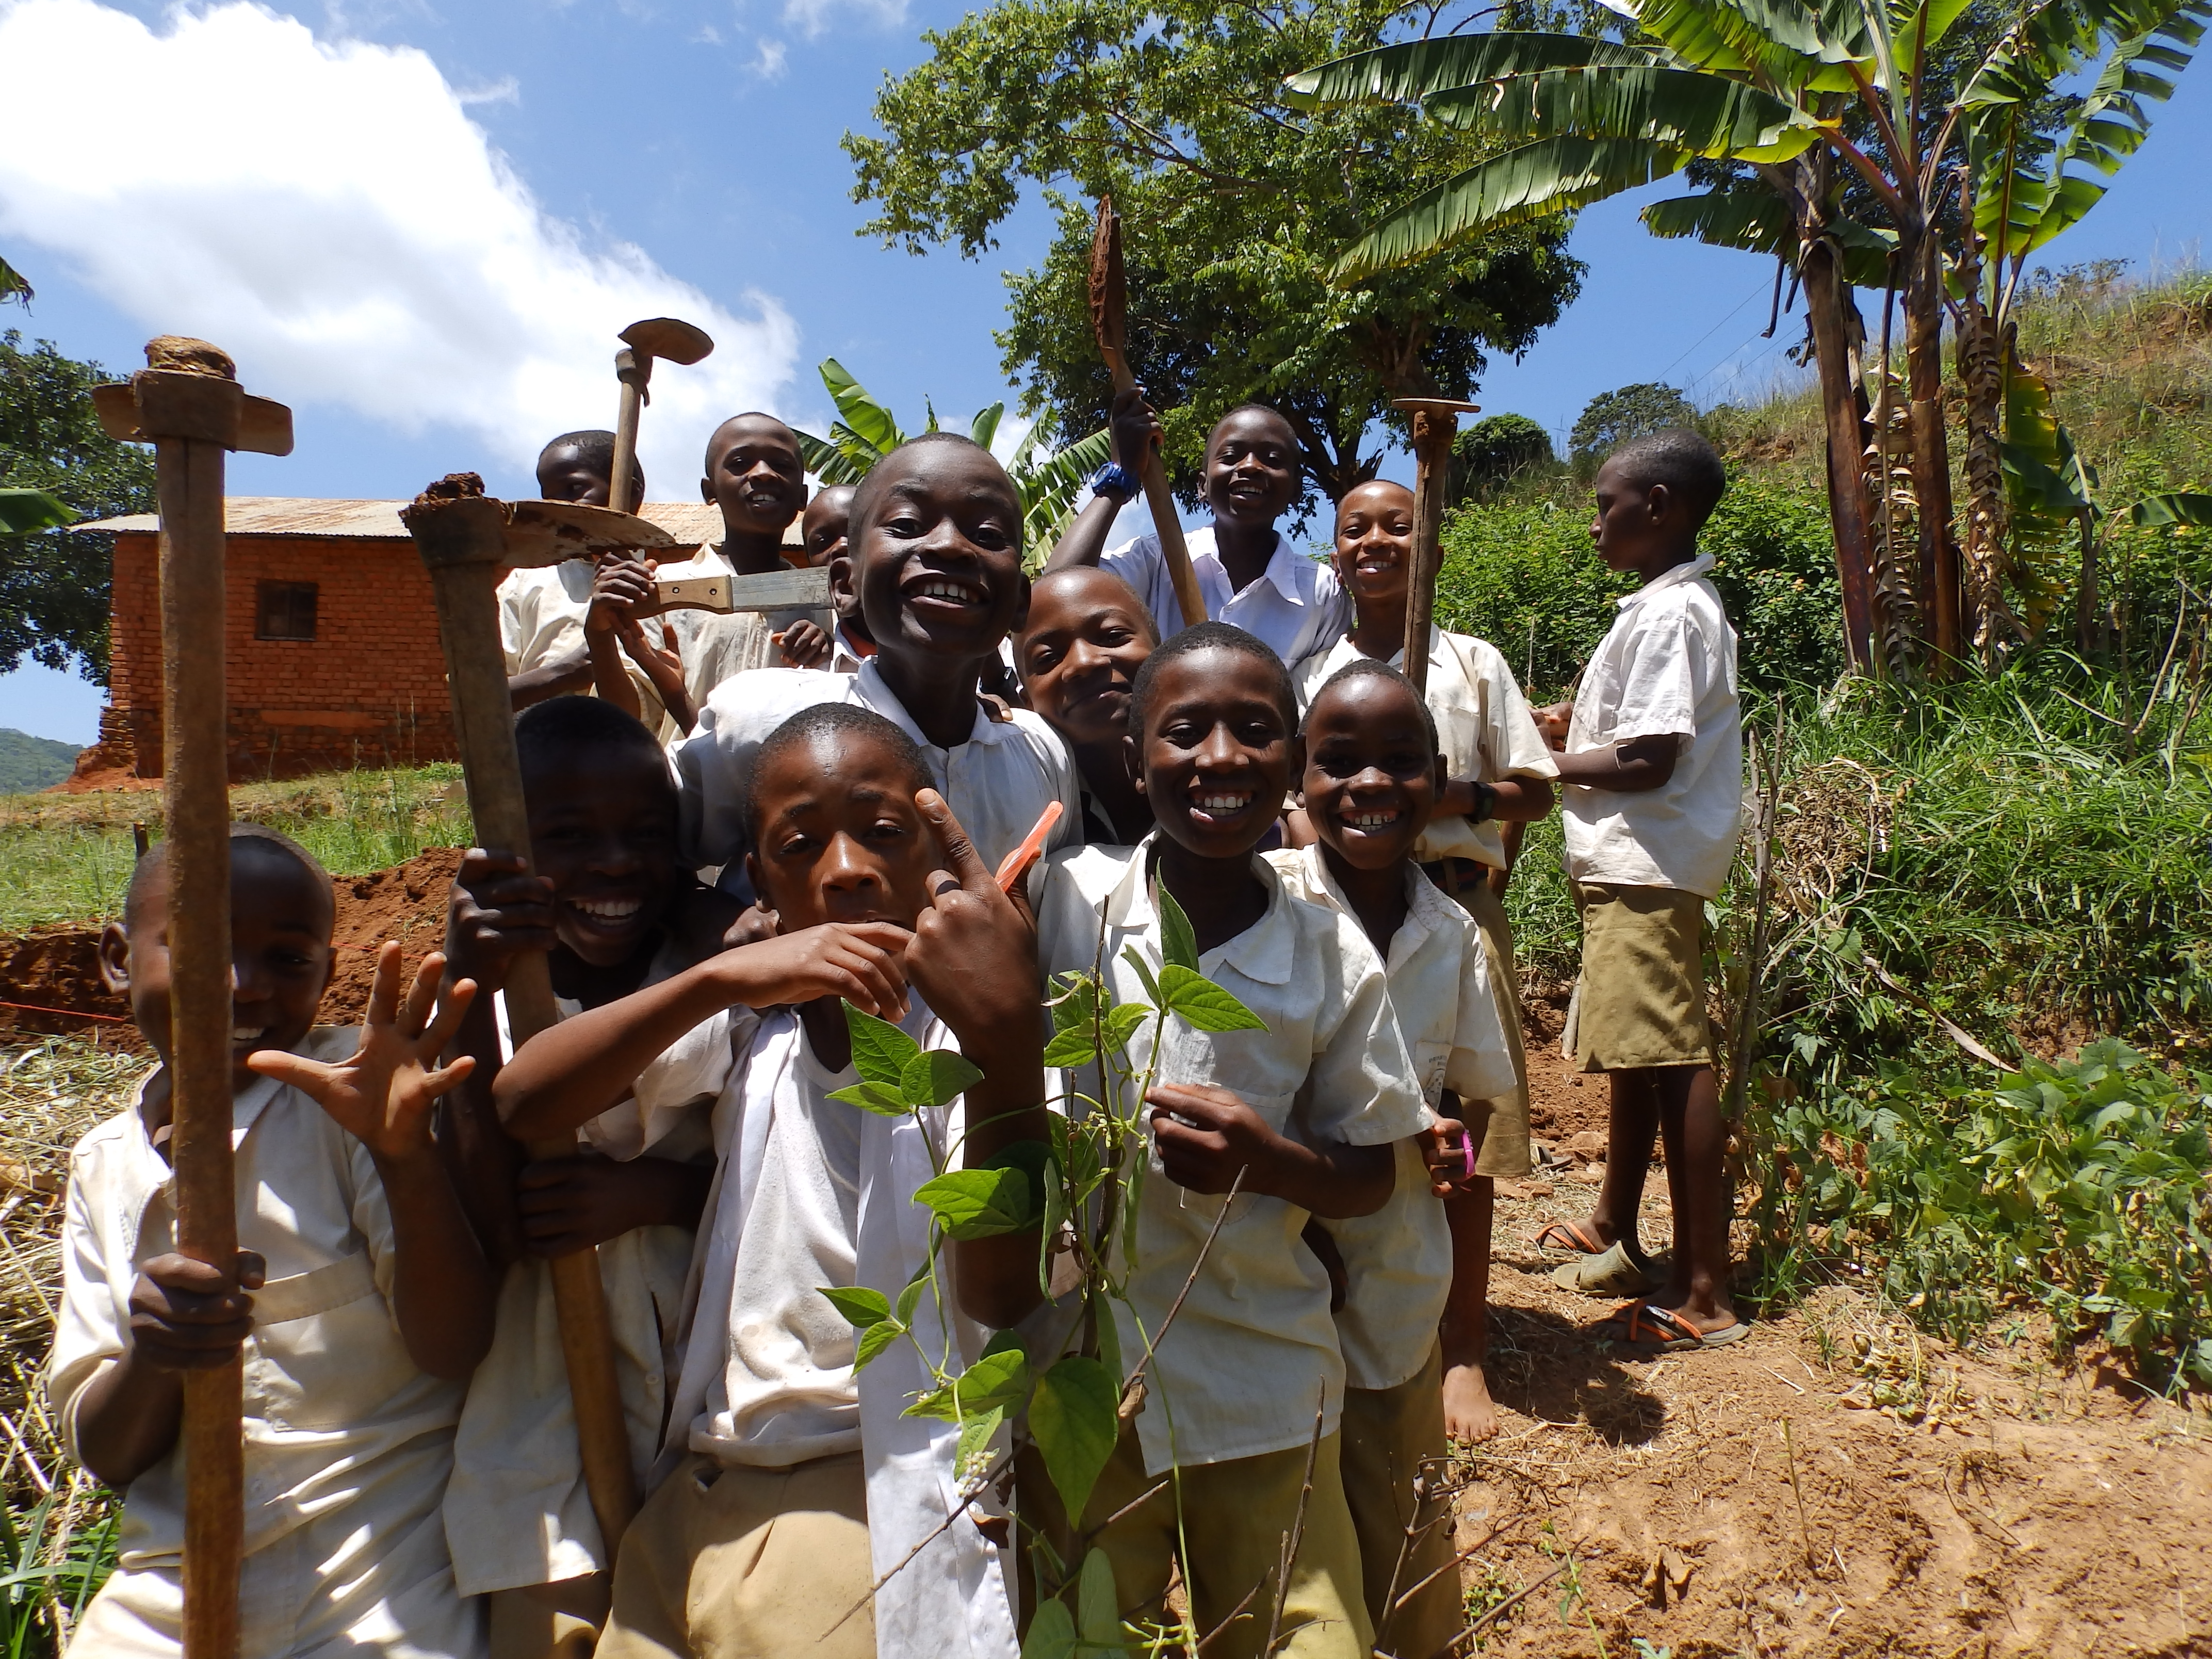 Cleaner Places and Safer Spaces - Pit Latrine Construction Grant